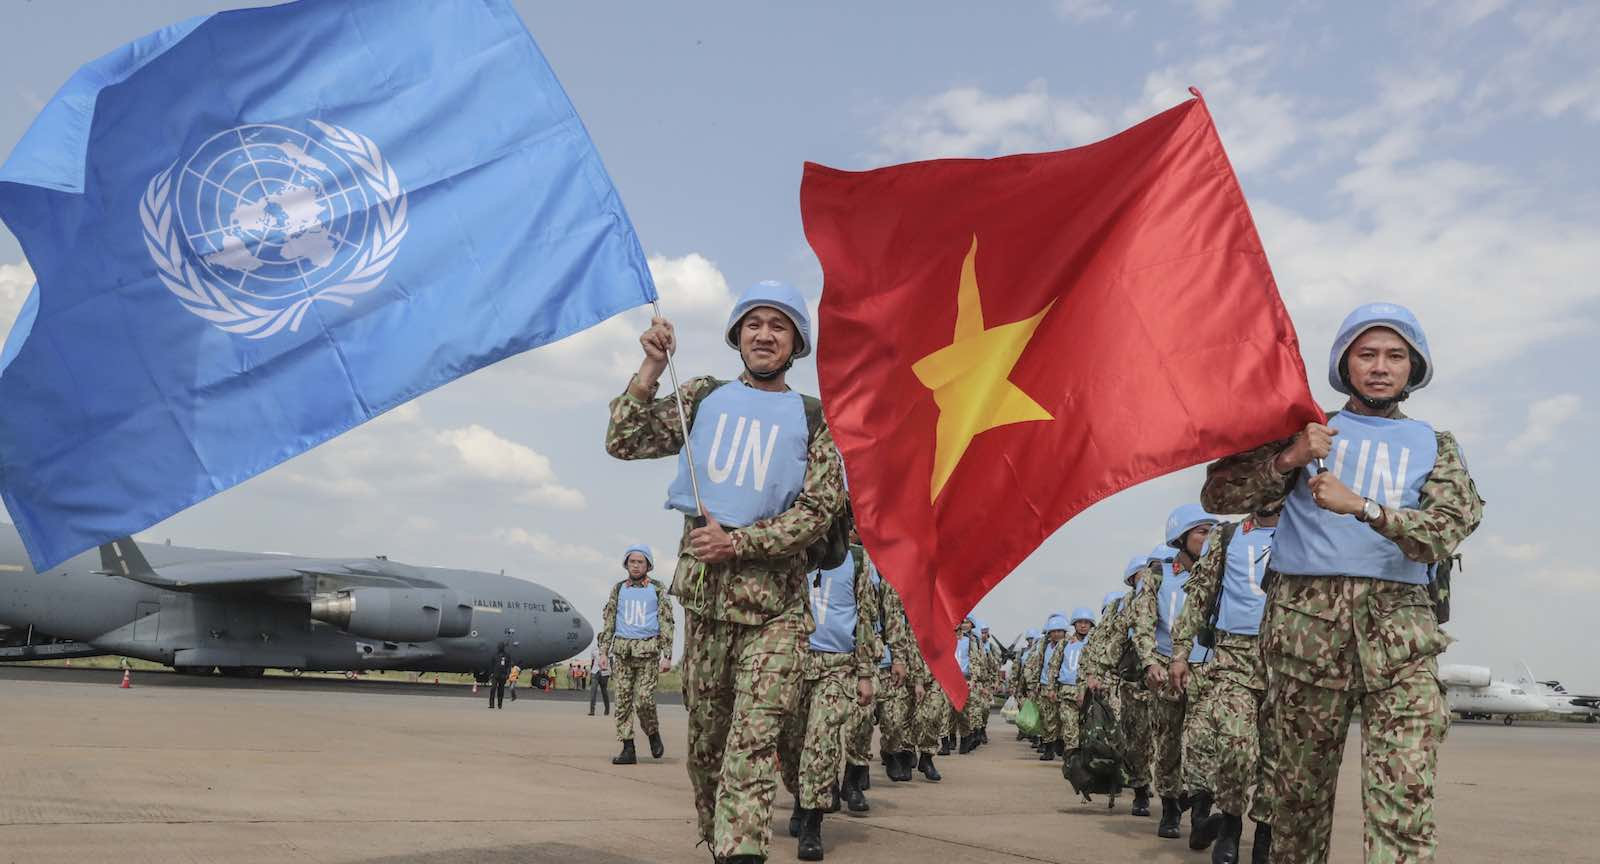 A team of 30 medical doctors from Vietnam arrives in Juba, South Sudan, in 2018 to begin their service with the United Nations mission in the country (Isaac Billy/UN Photo)